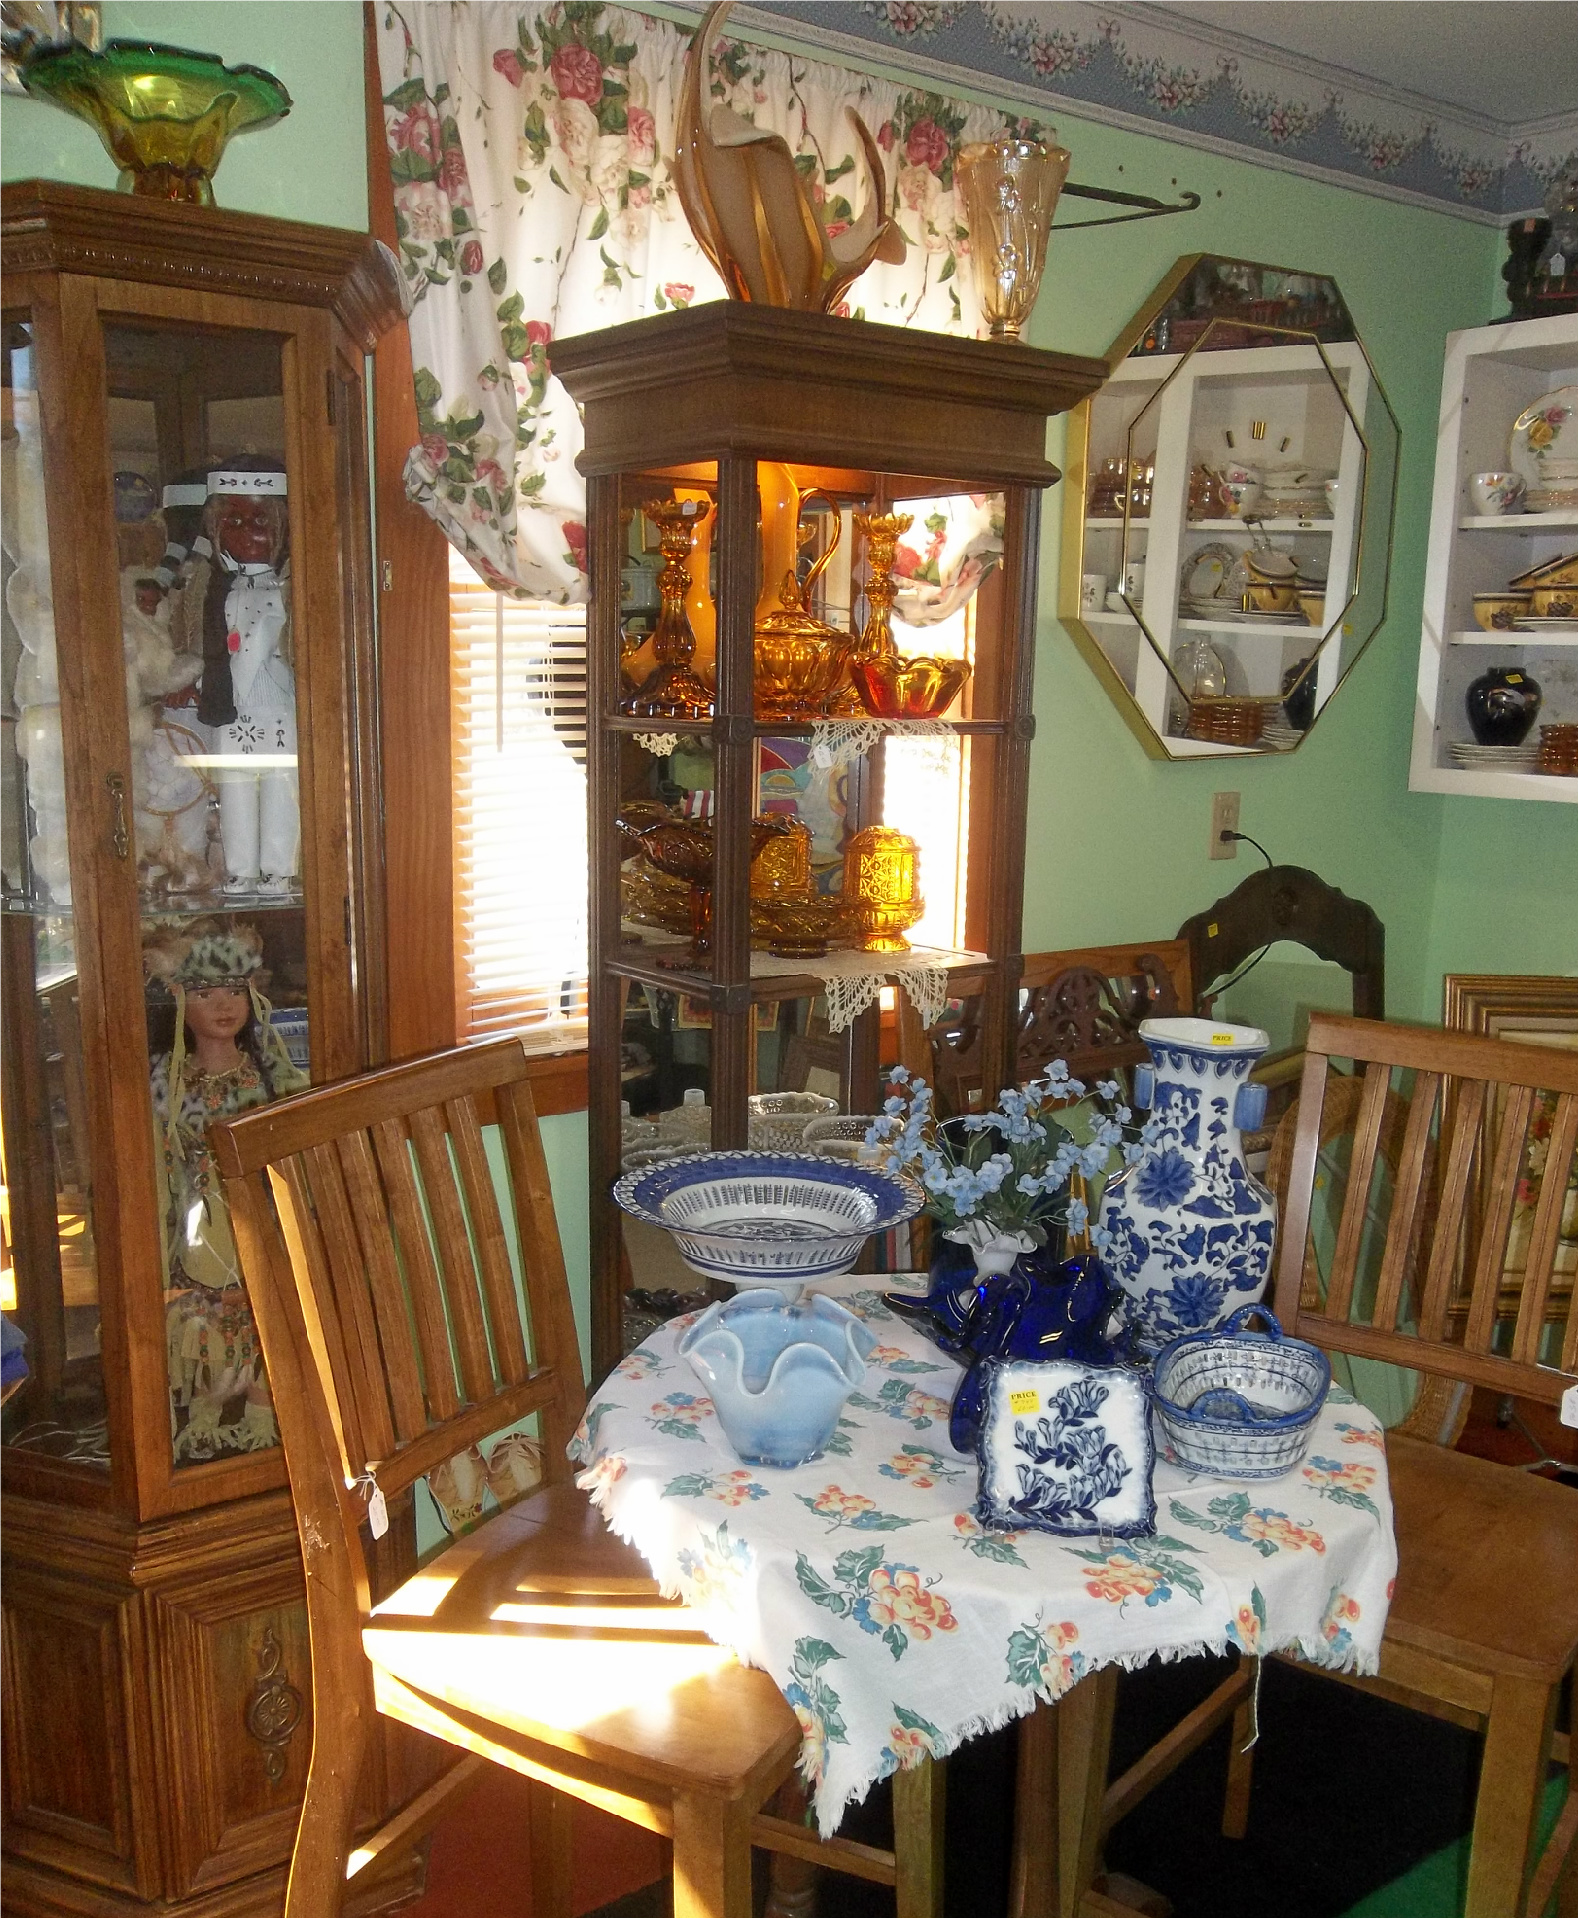 collectibles & home decor at the New To You Shop located at Ellies Daylilies in Unity Maine